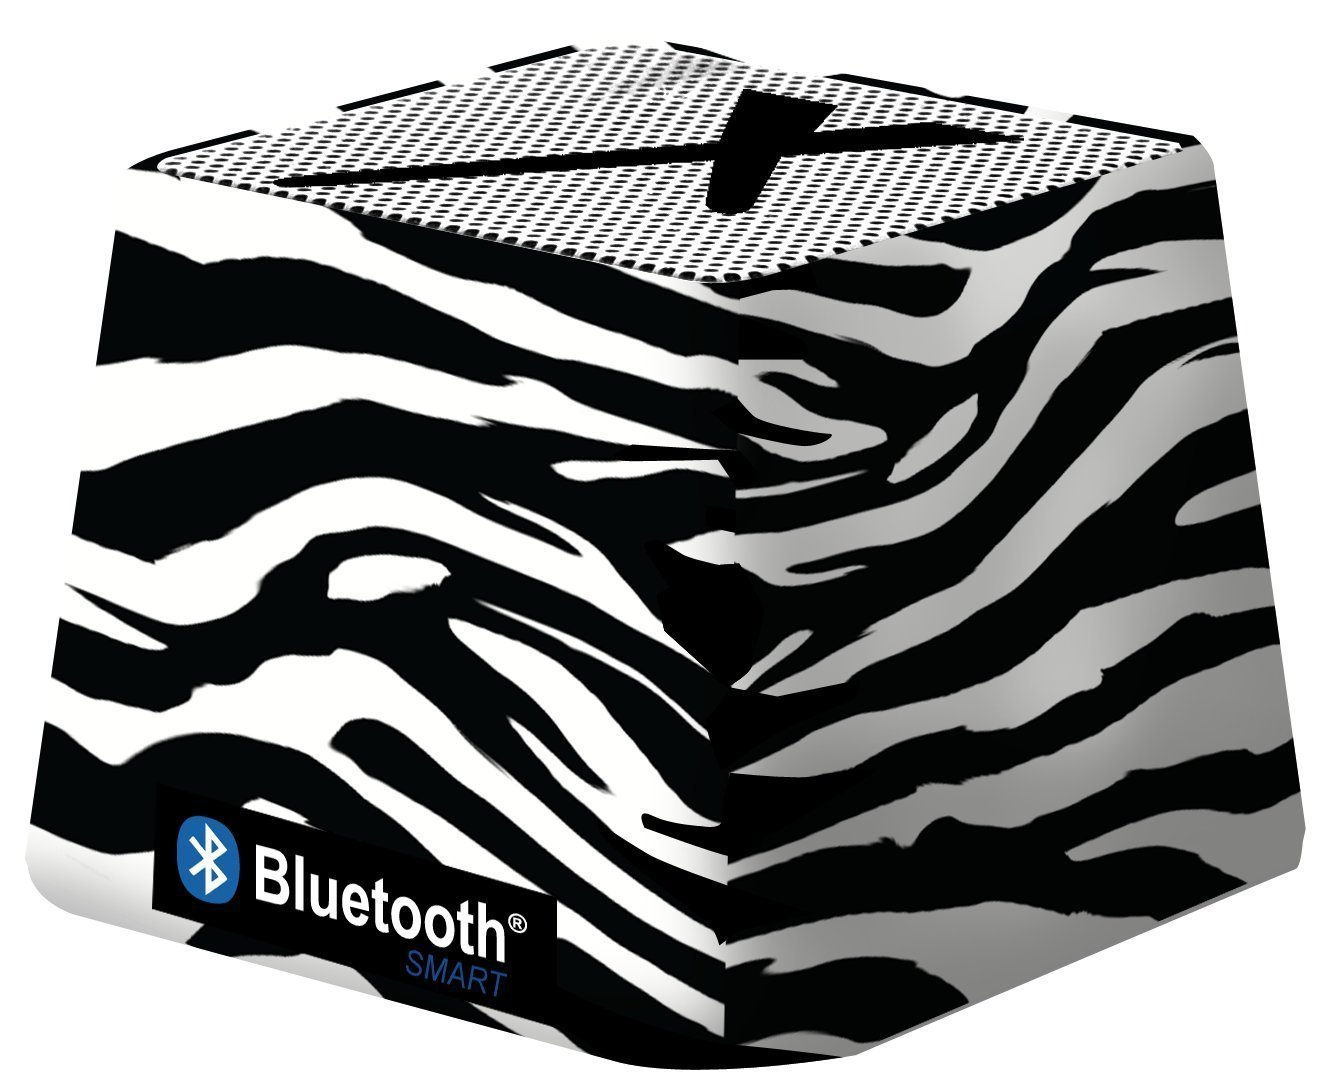 Xit Audio Bluetooth Wireless Mini Portable Speaker System for iPods, iPhones, iPads, Androids, and MP3 Players (Zebra)